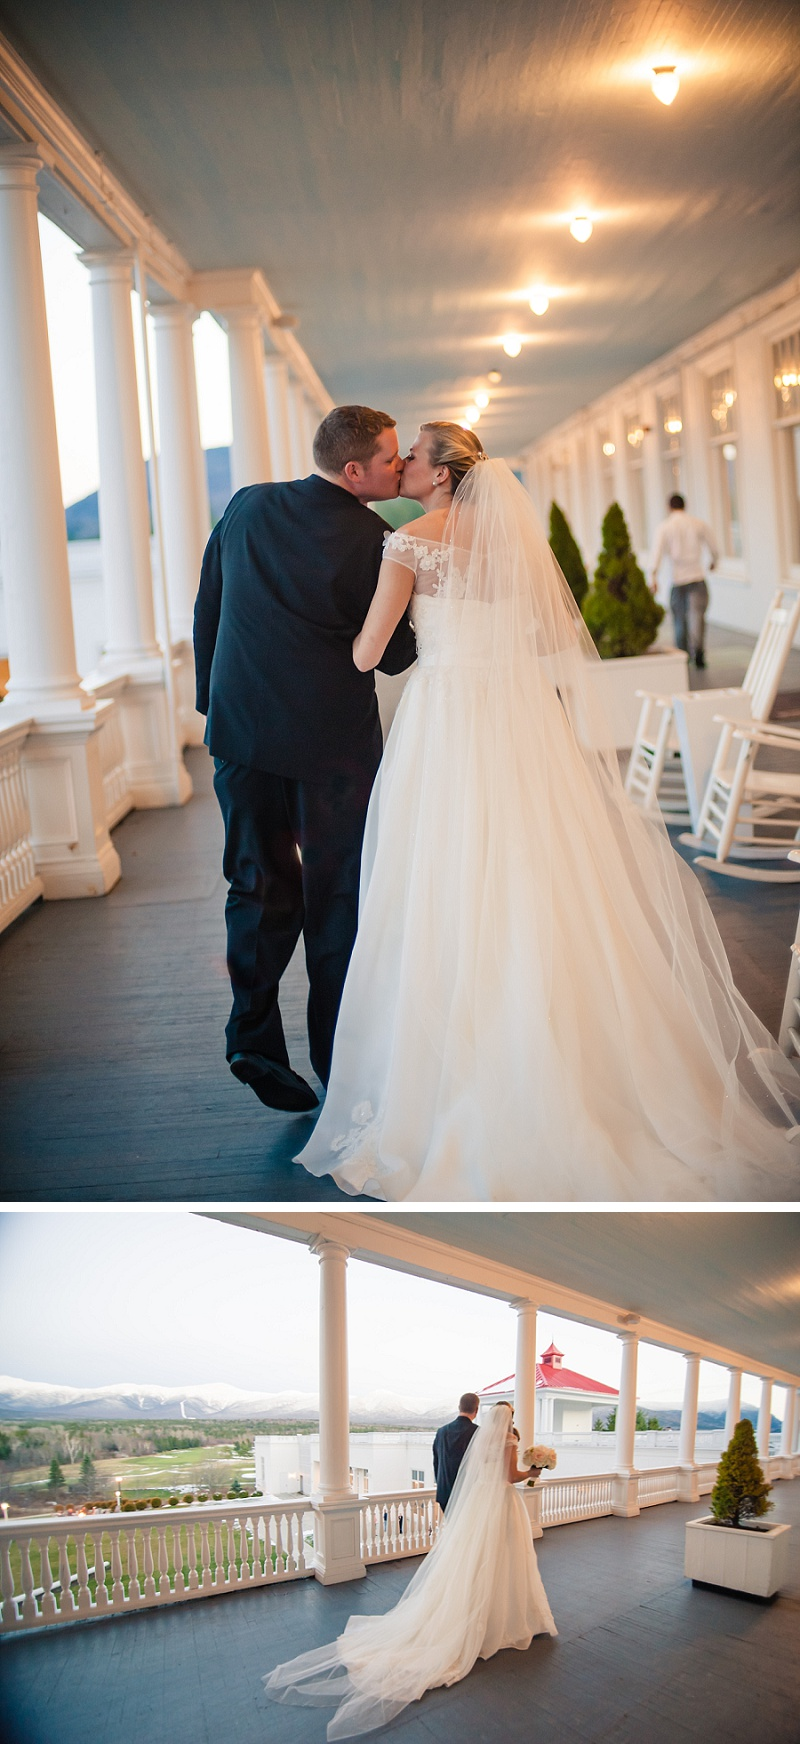 Bride and groom walking on the veranda of the Mount Washington Hotel in winter